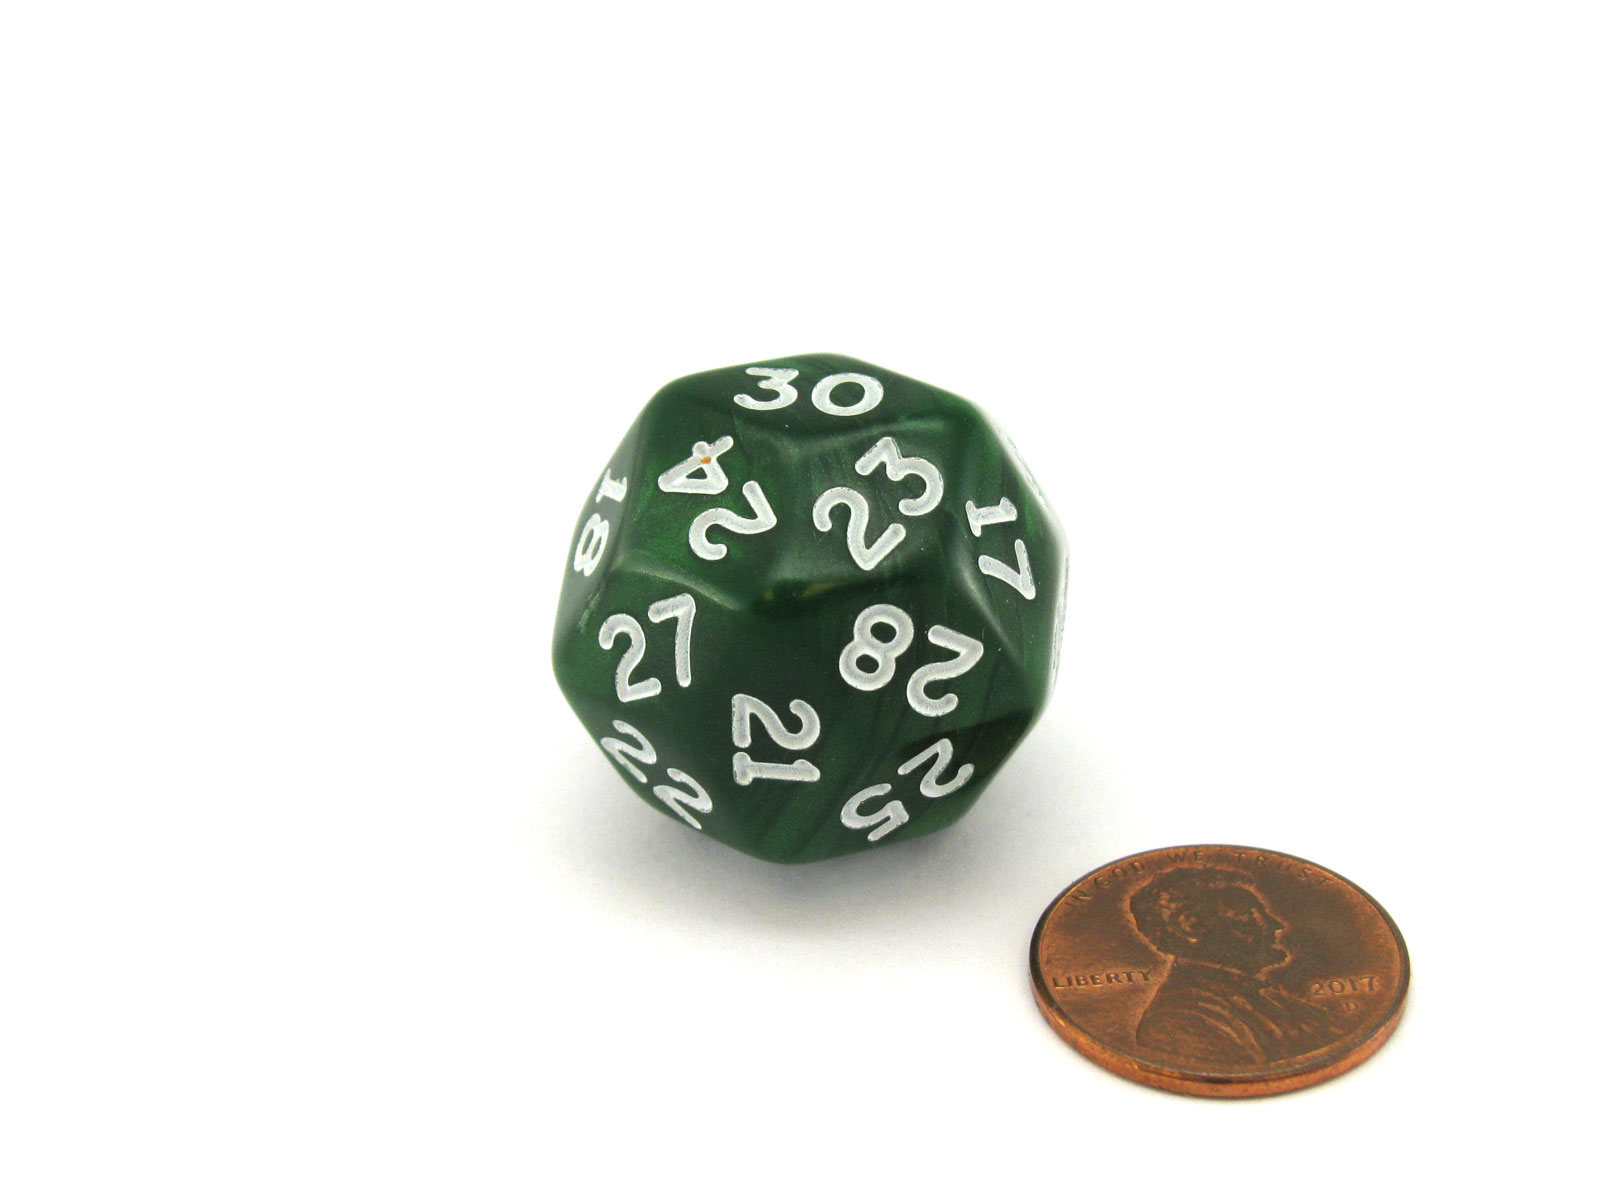 Pearlescent Triantakohedron D30 30 Sided 25mm Chessex Dice - Green with White